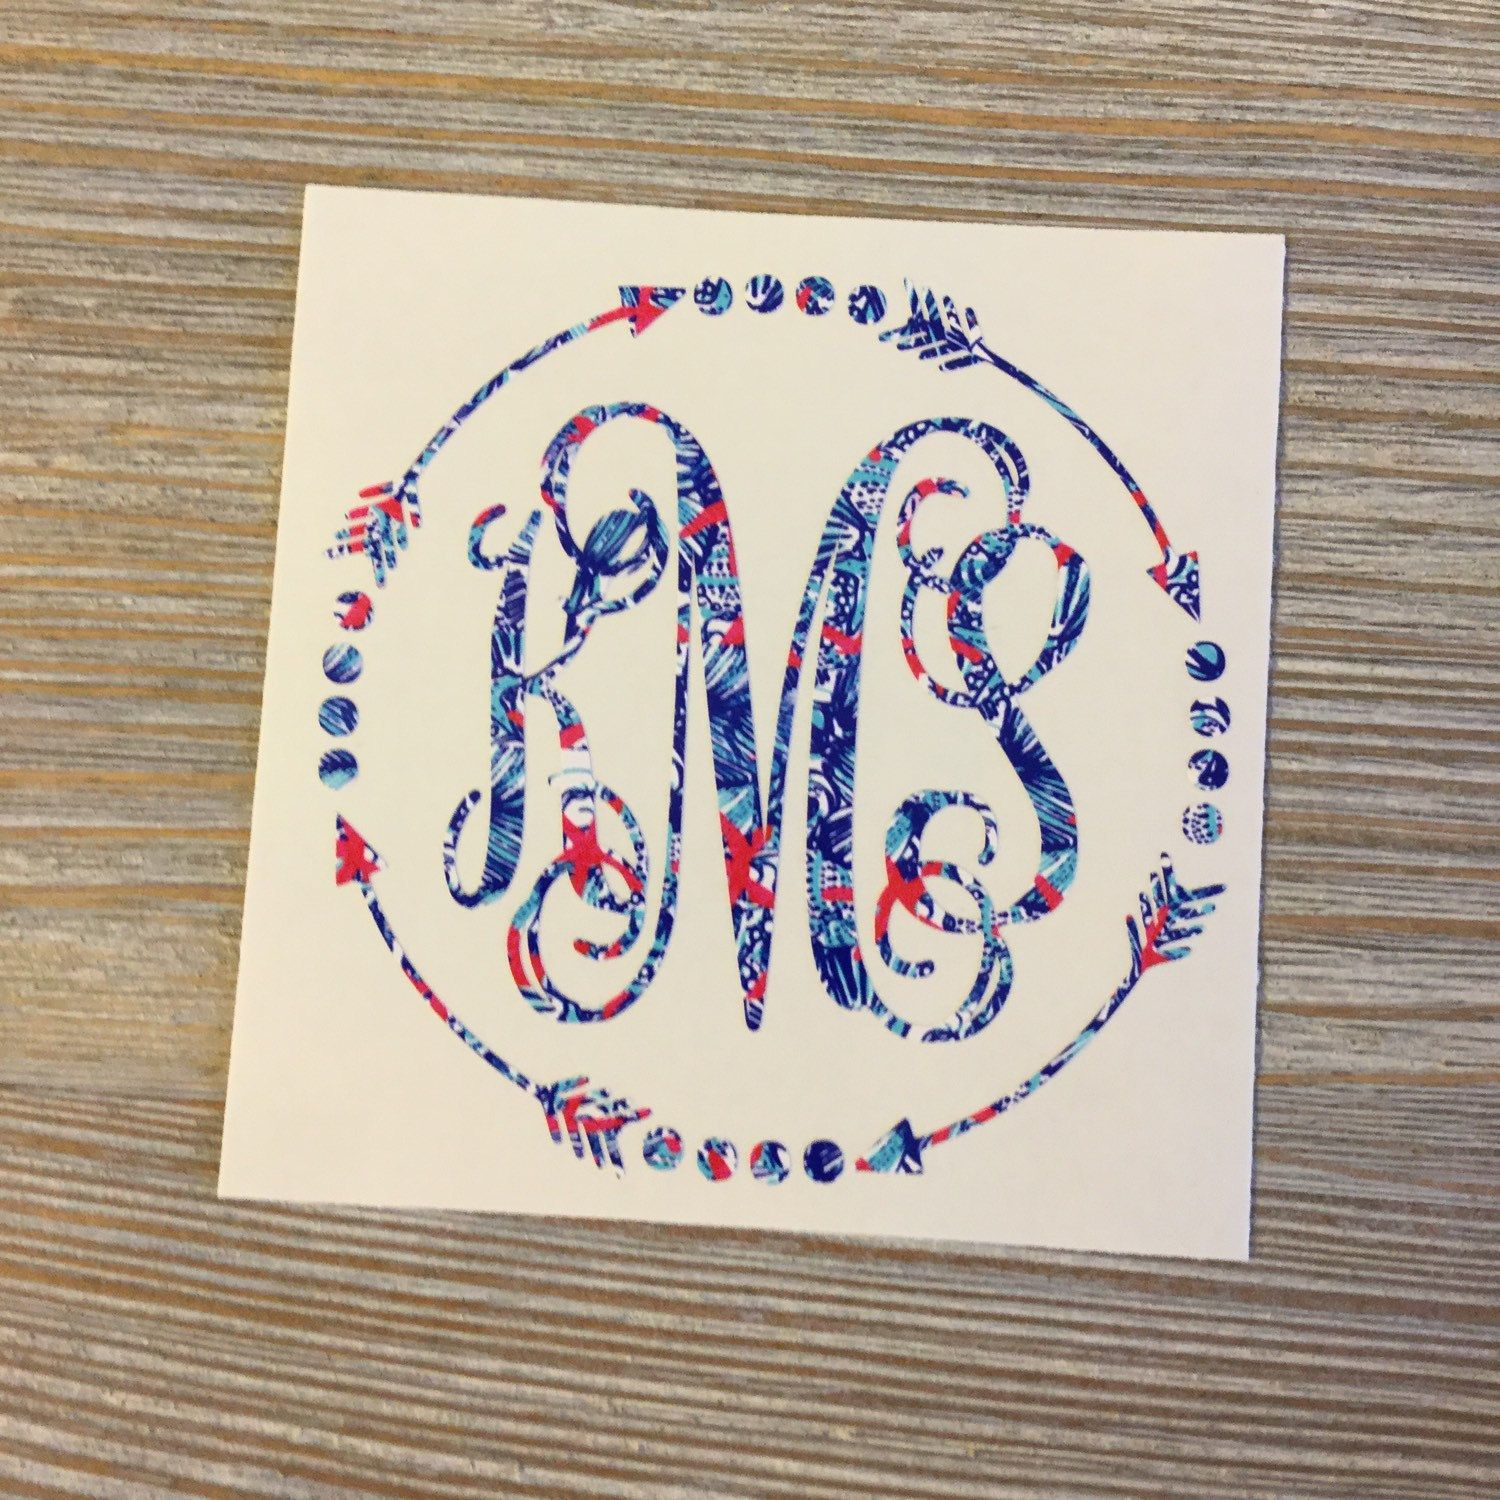 Yeti Monogram Decal Yeti Decal Monogram Decal by TheSaltyKiss